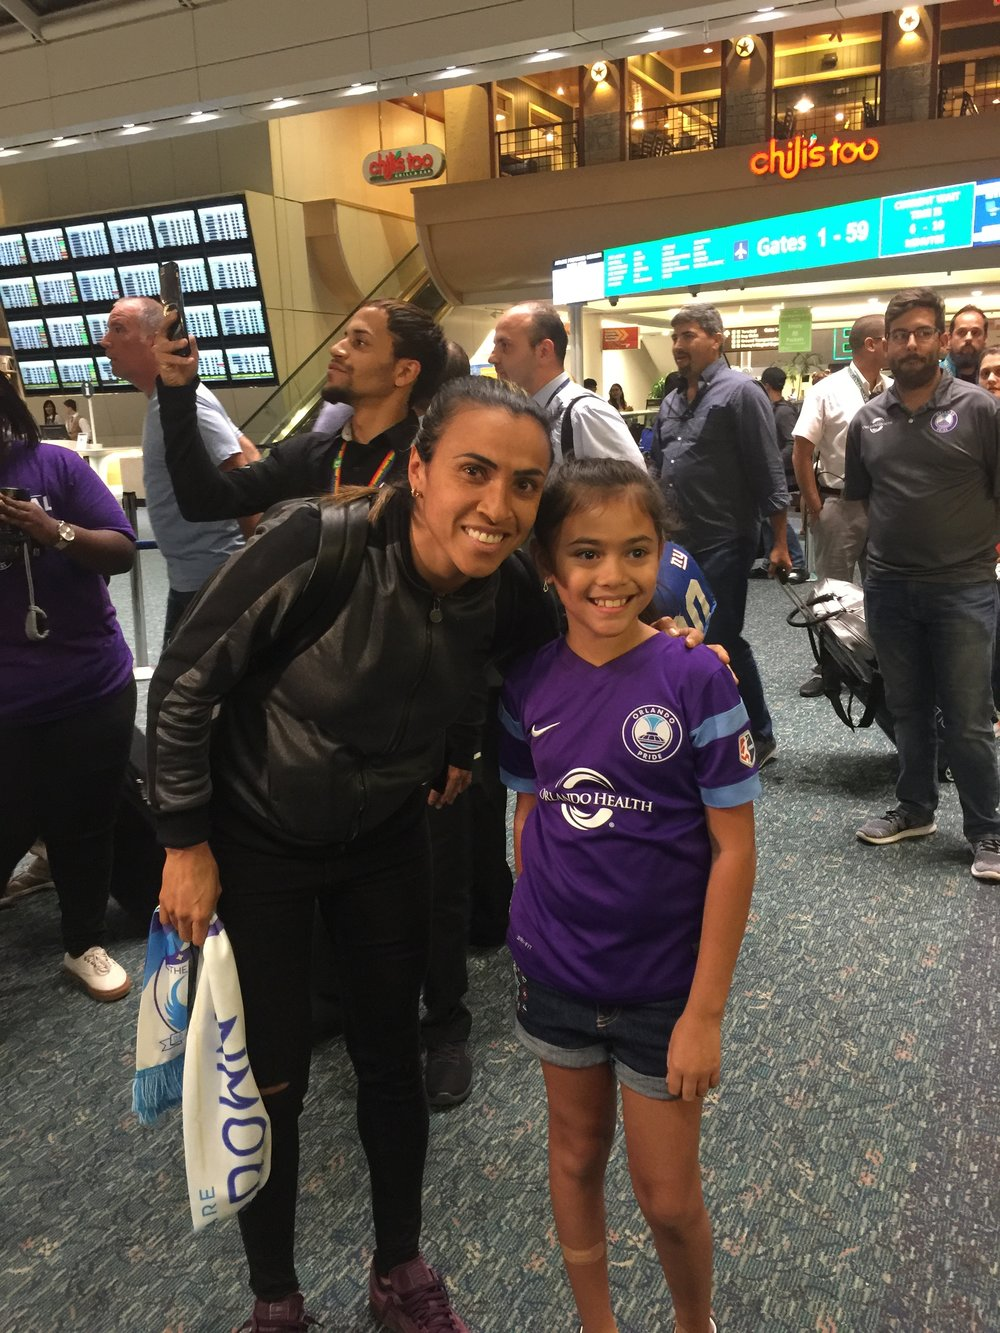 A young member of The Crown gave Marta her first Orlando supporters' scarf when she arrived on Thursday night.